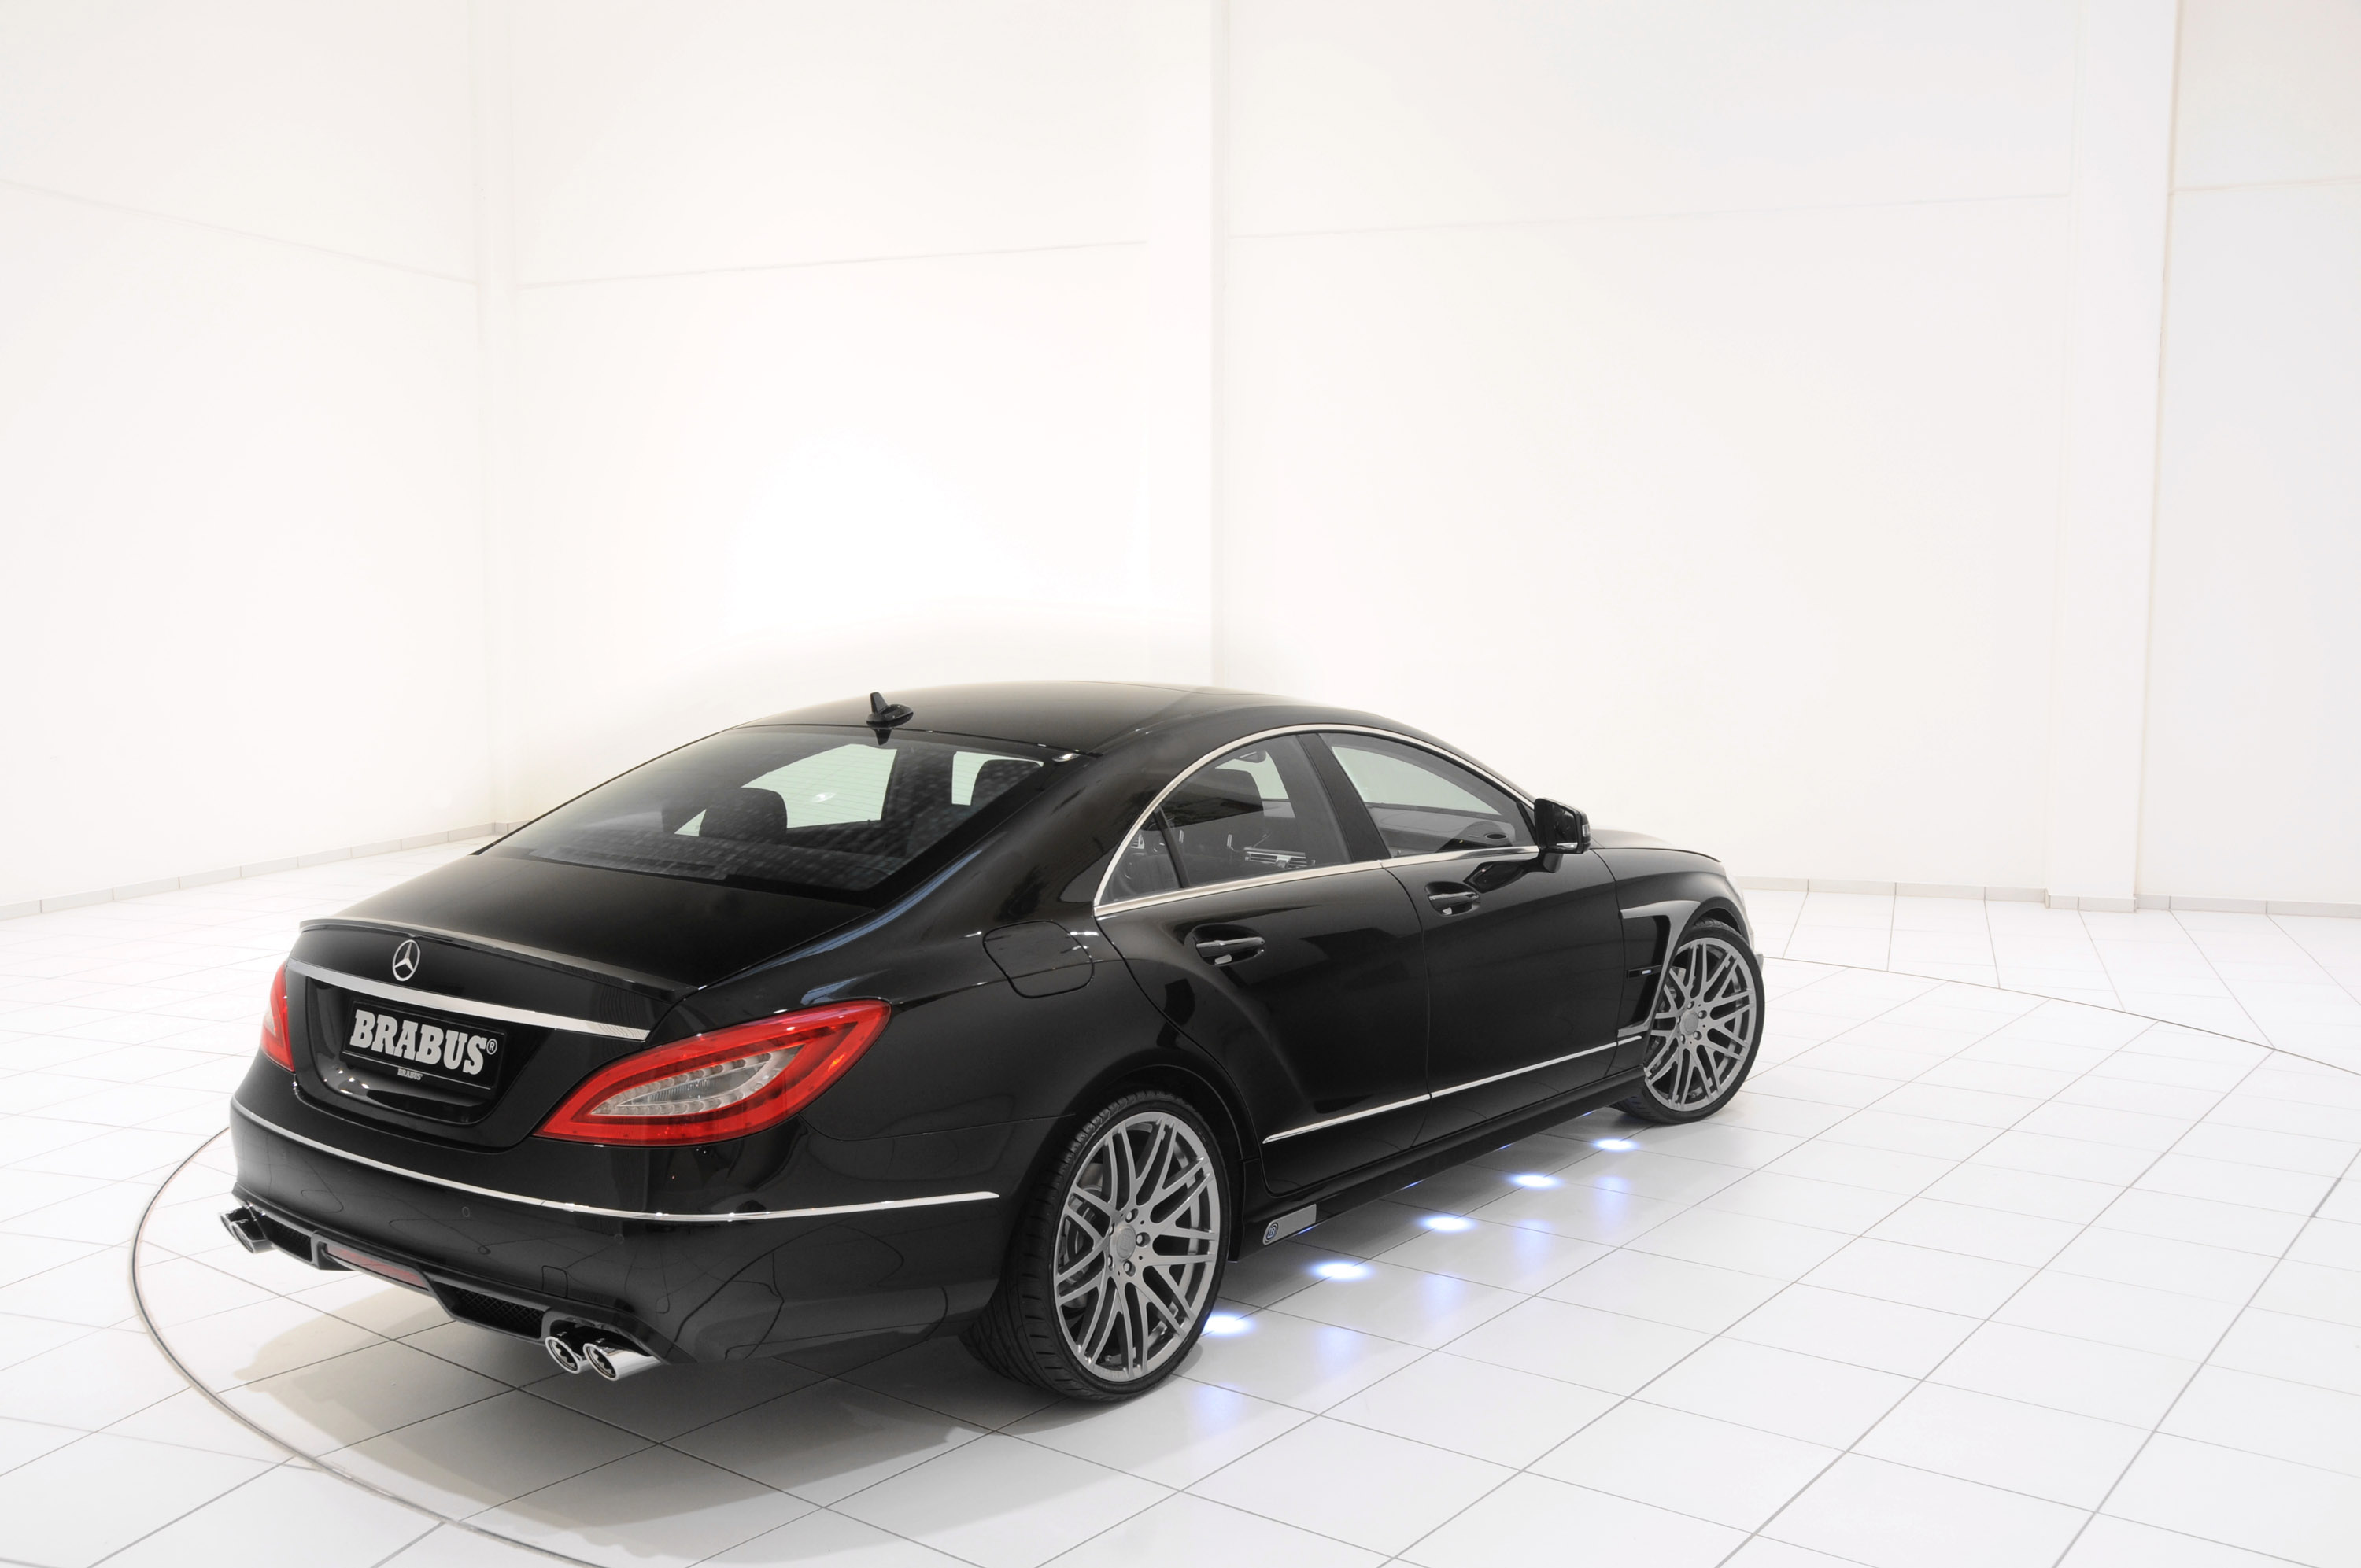 Brabus 2012 mercedes cls coupe for Mercedes benz cls 2012 price